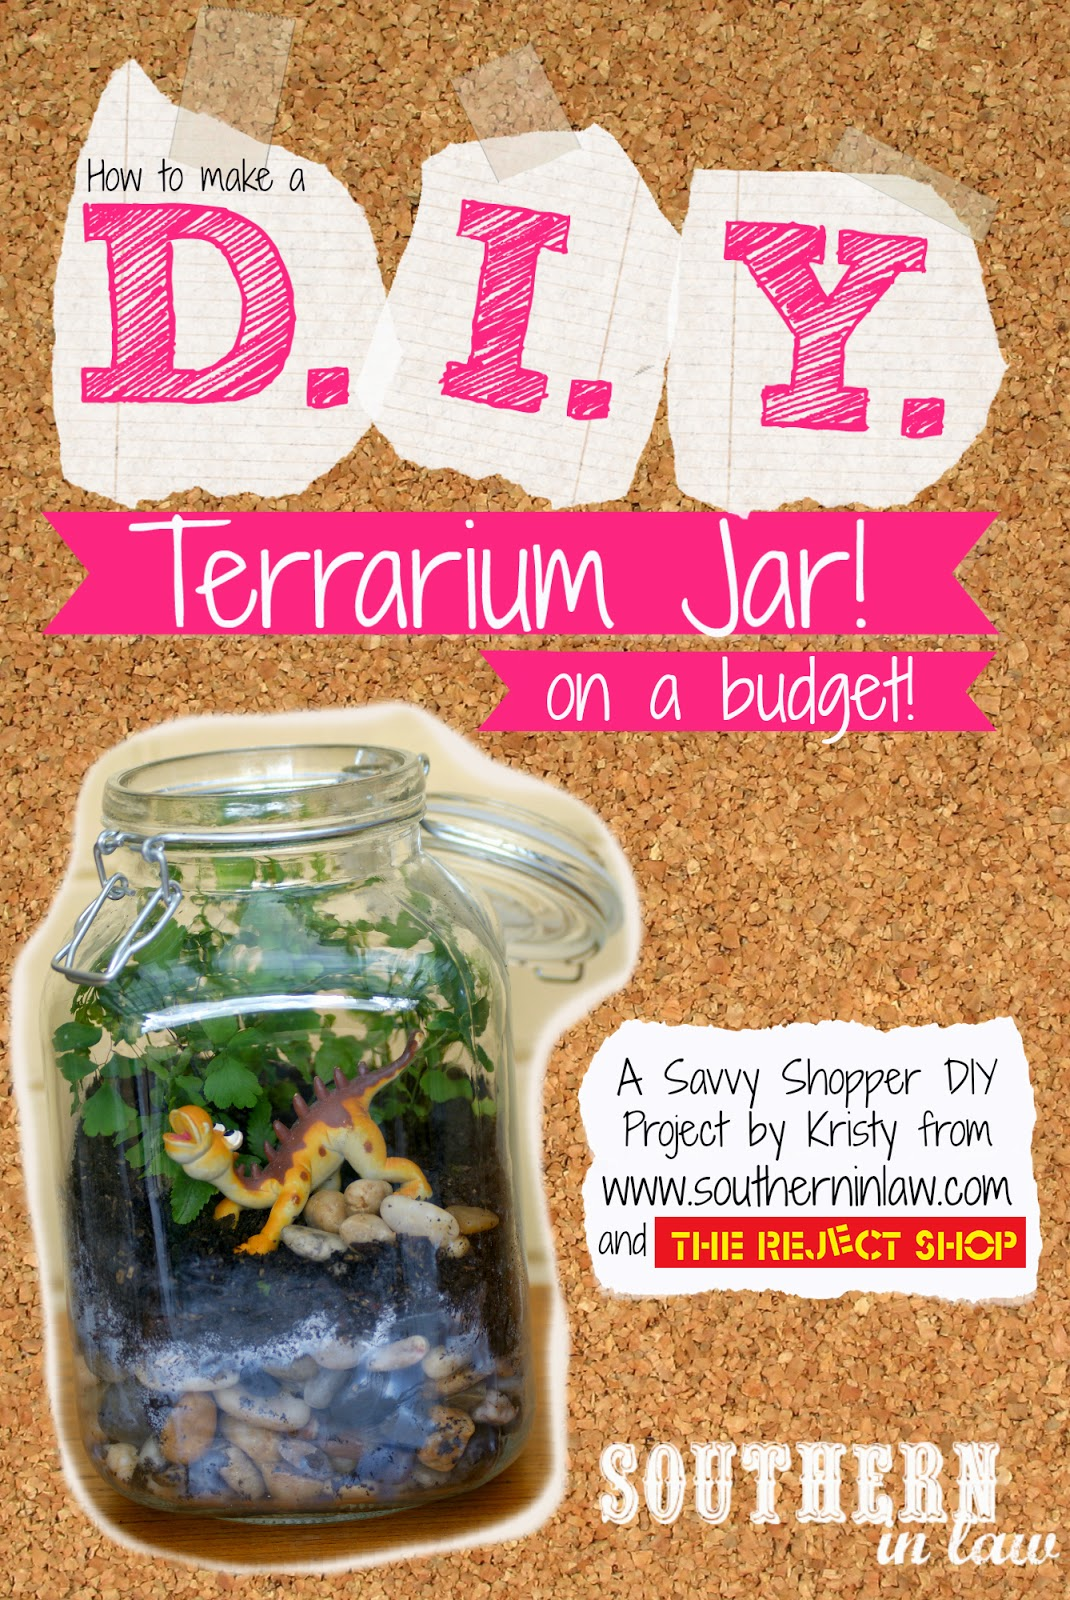 How to make a Terrarium Jar - DIY Terrarium Jar How-To